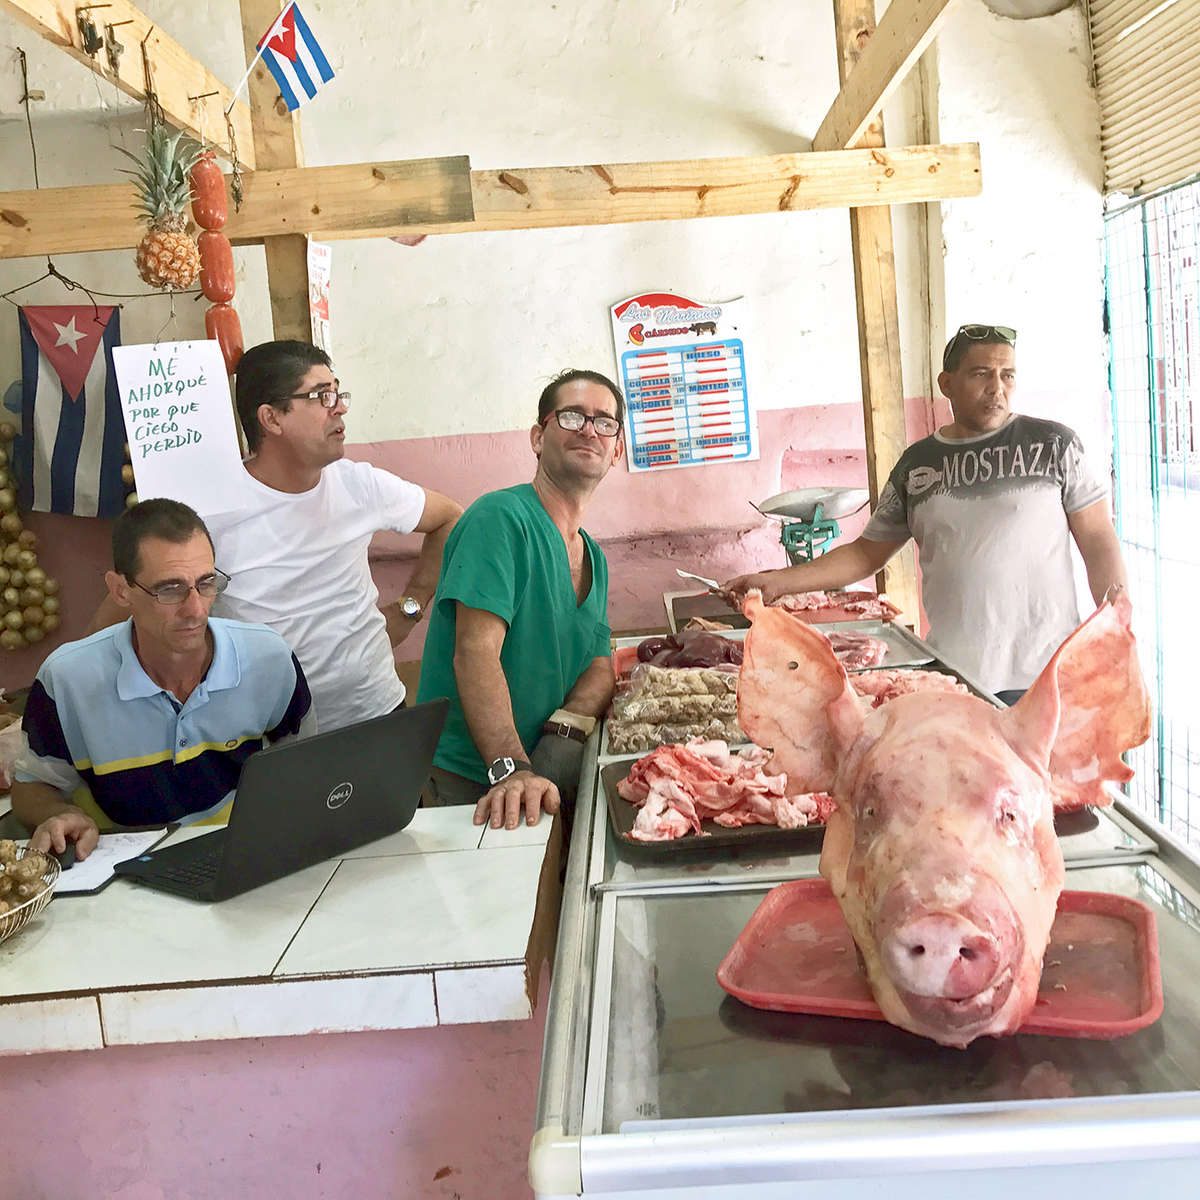 Photo of men selling fresh killed pork inside a butcher shop in Old Havana, Cuba.